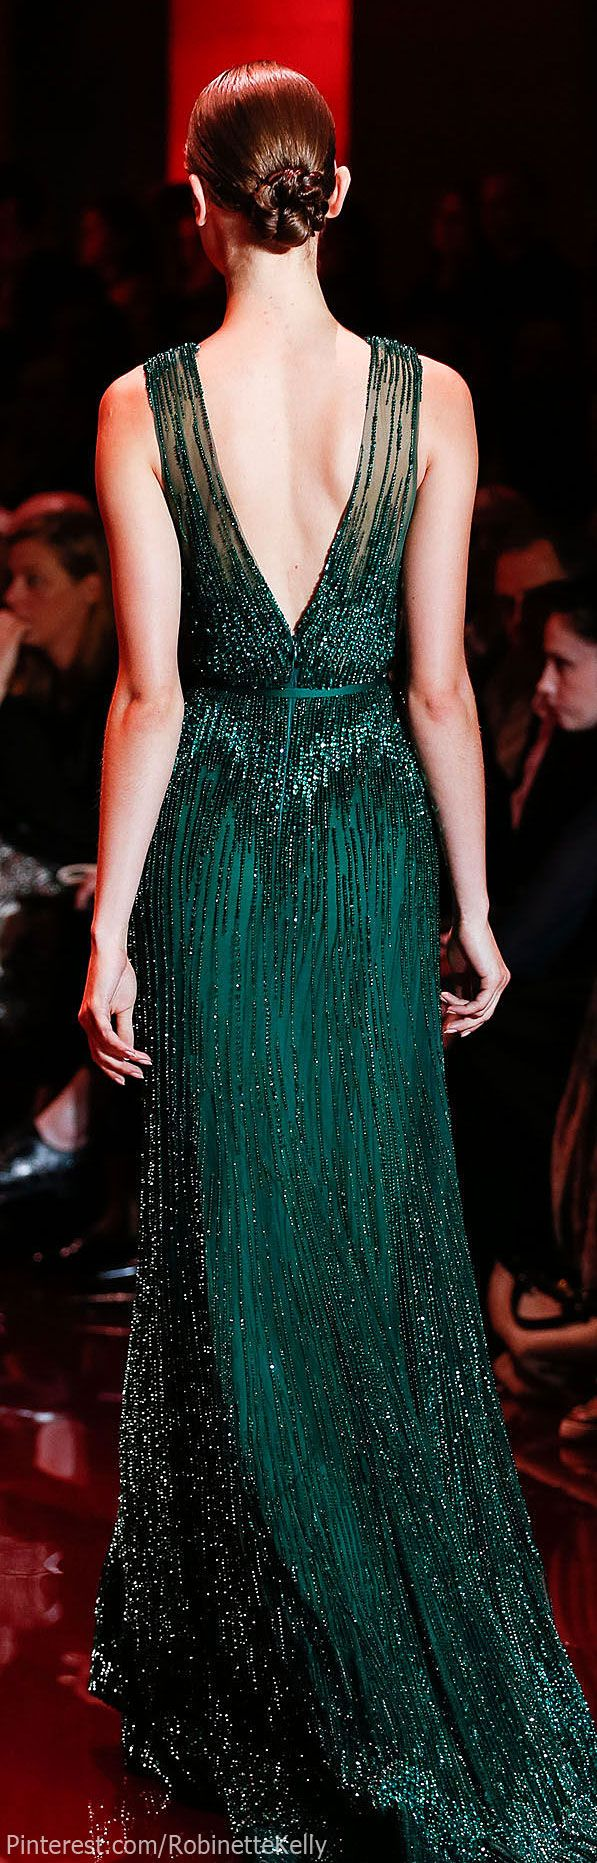 Elie Saab, f/w 2015 | Couture. Emerald green gown. Lovely dress jjdress.net Not to toot my own horn but I'd look dang good in this dress.